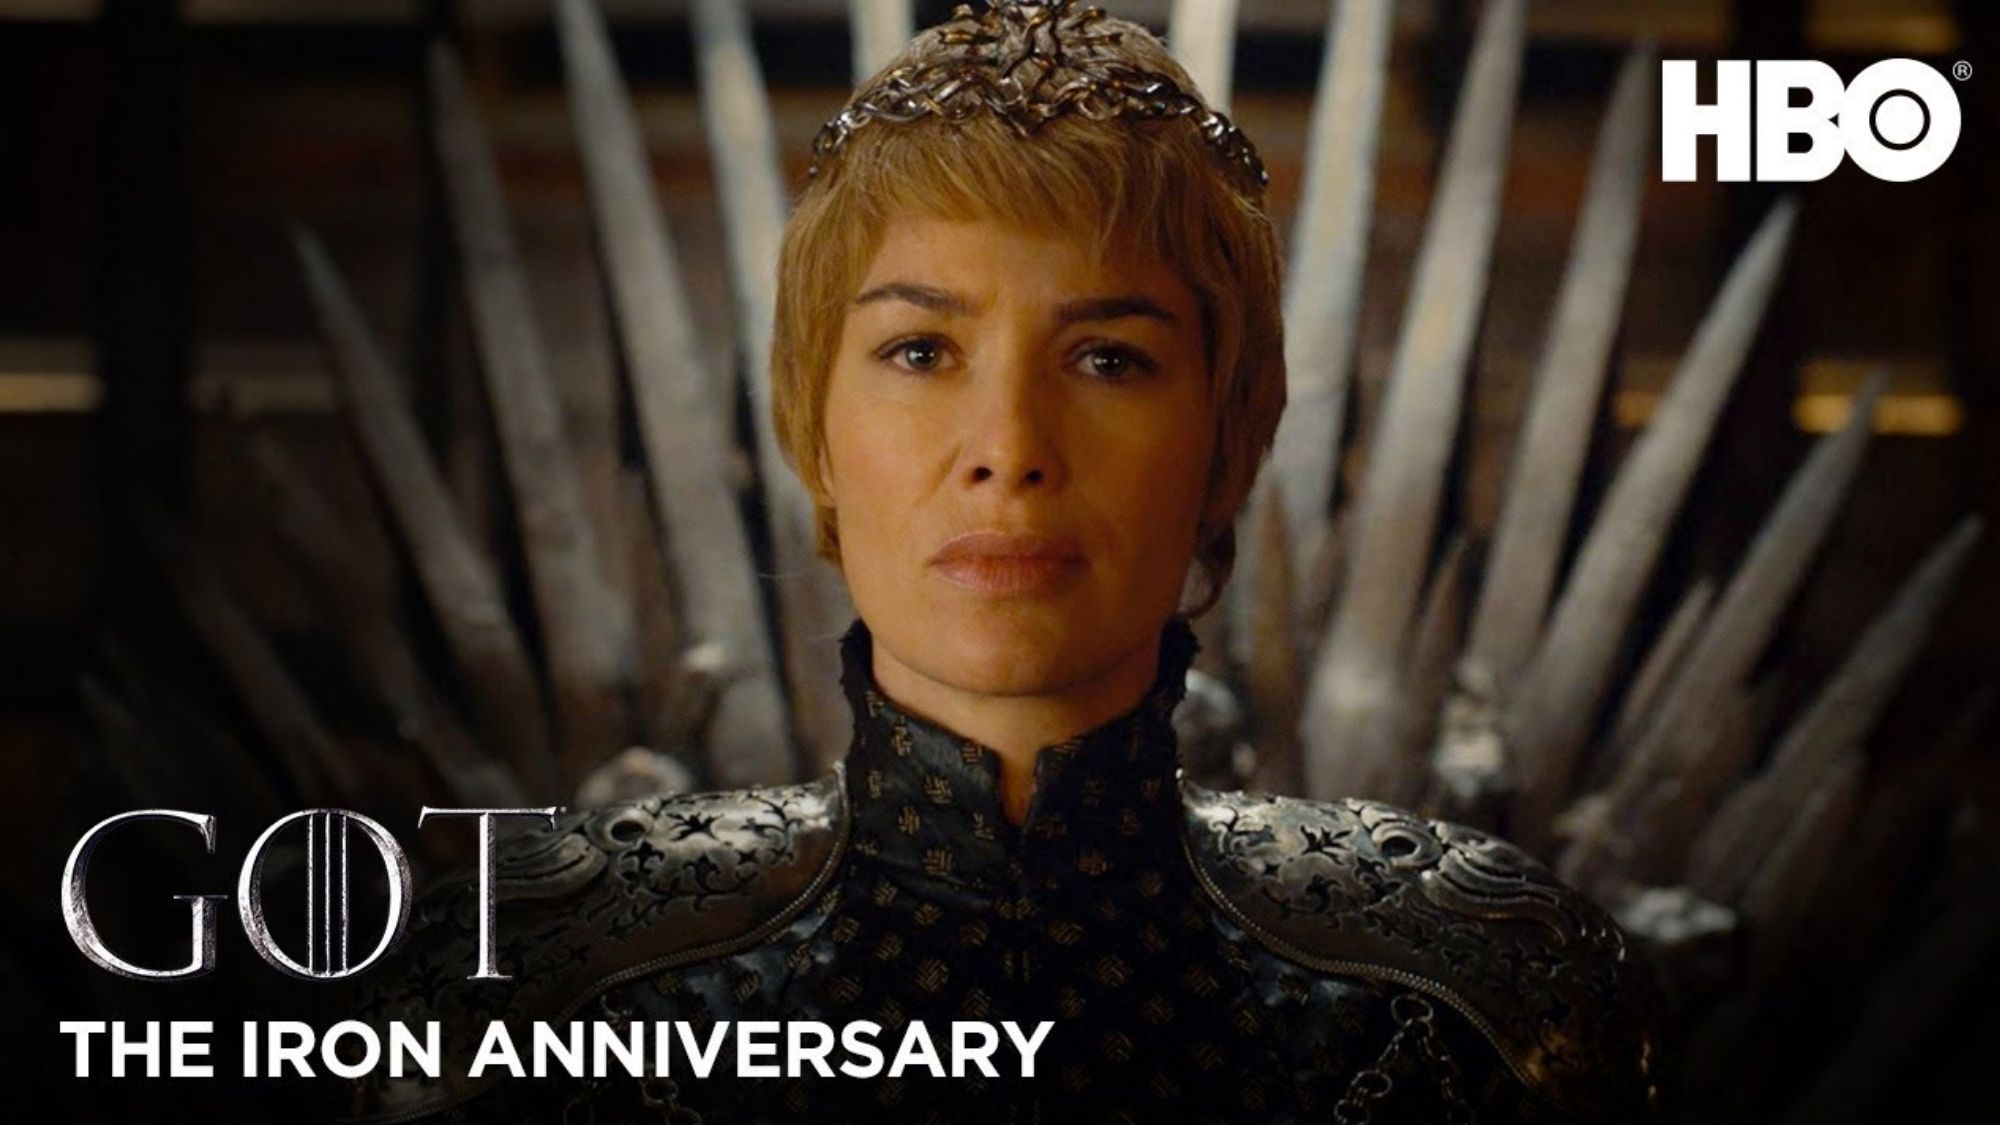 Game of Thrones franchise celebrates 10th anniversary with more offerings from HBO